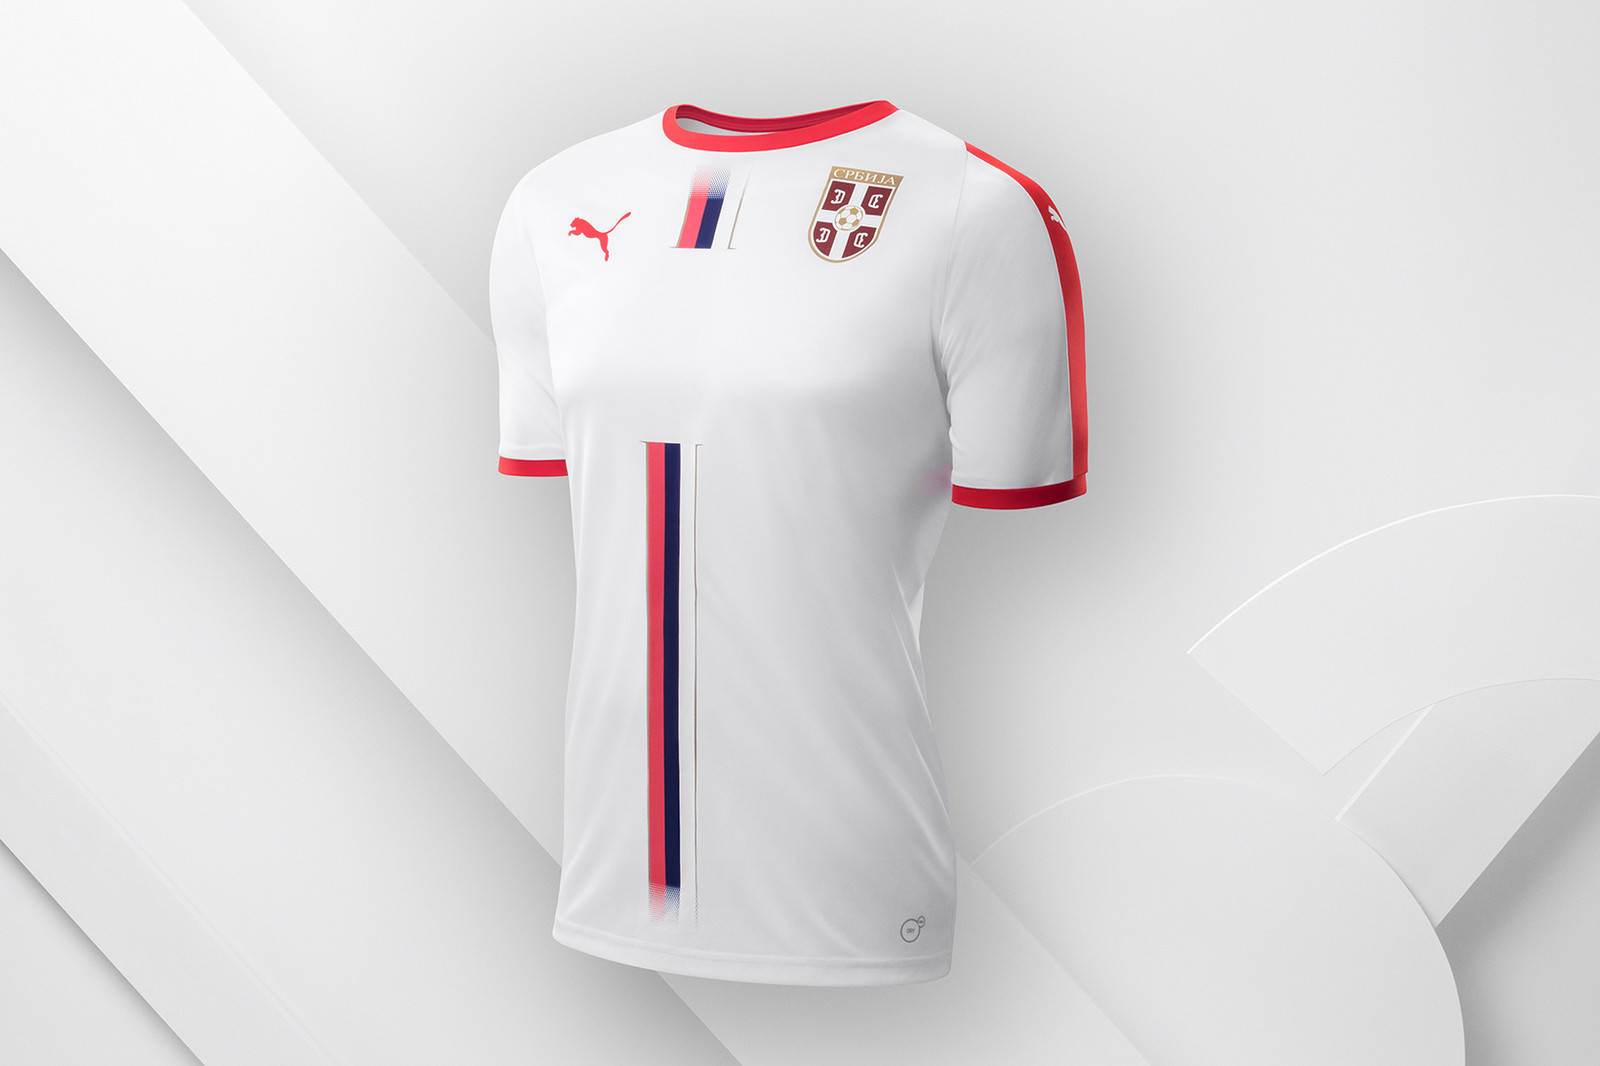 d1f804c89b0 FIFA World Cup 2018 Football Soccer Kits Jersey Best All Every Round-Up  Nike adidas. Another predominantly white away shirt ...